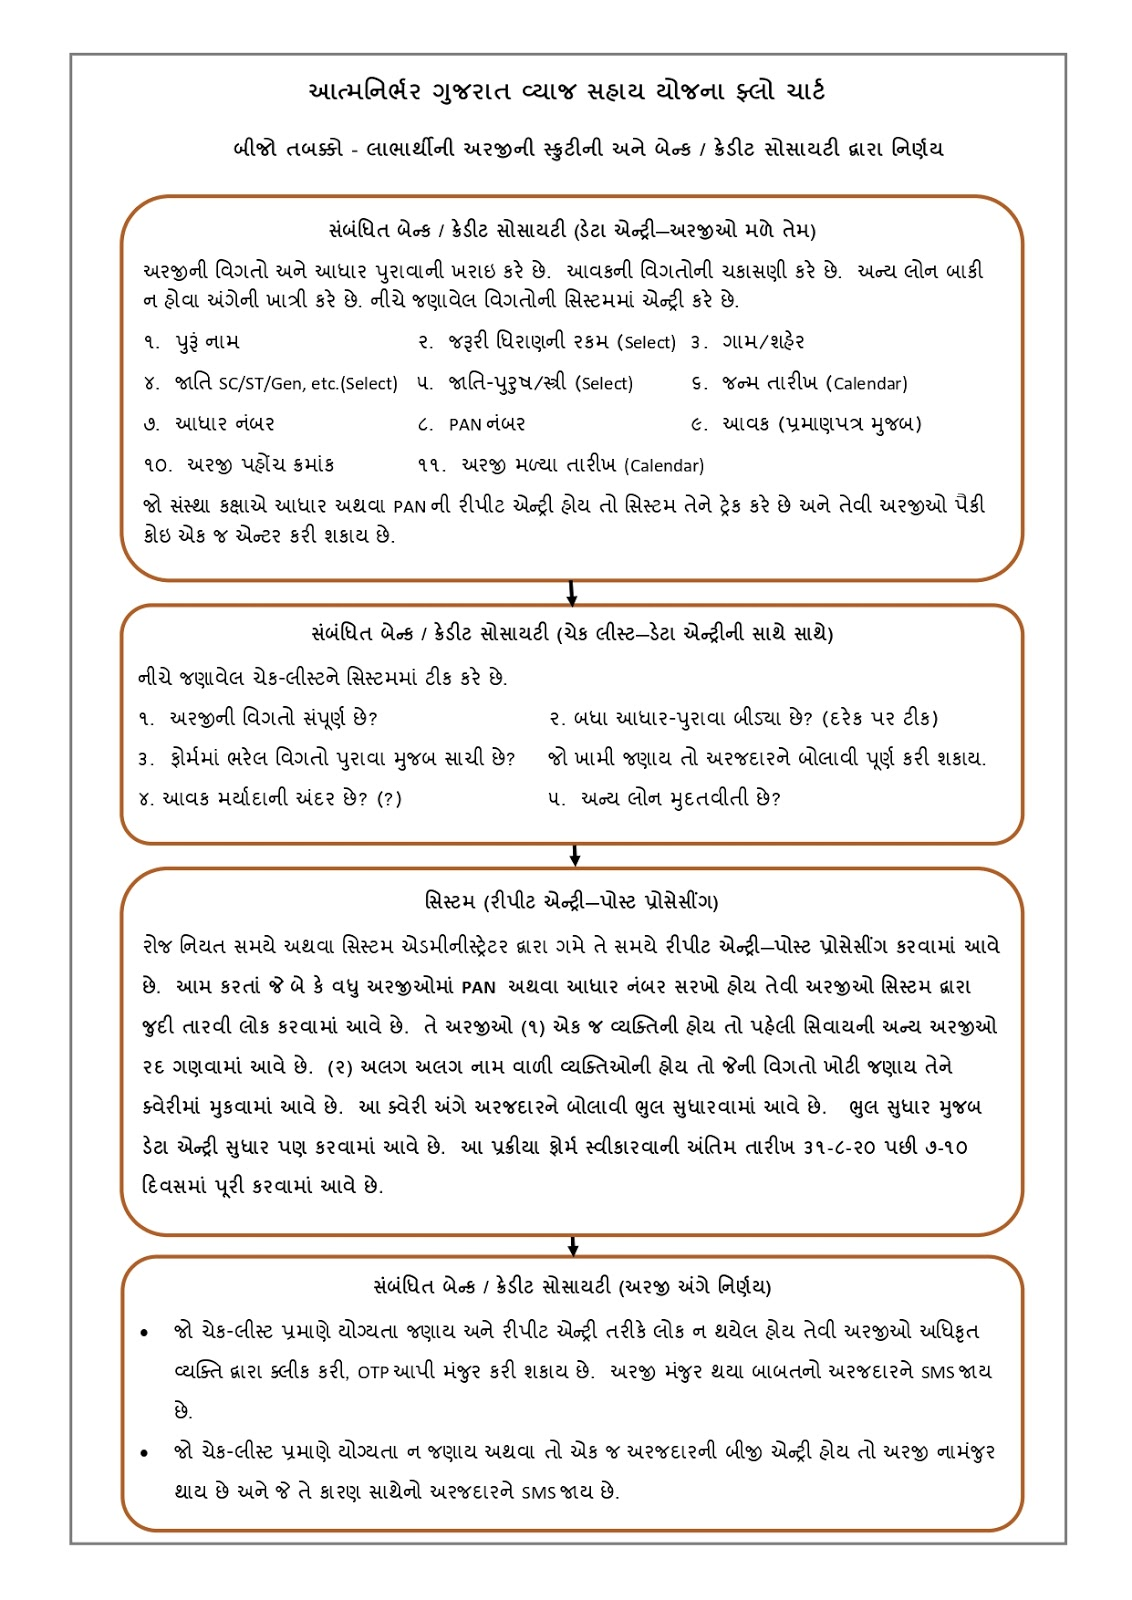 Atmanirbhar Gujarat Sahay Yojana (AGSY) 2020 Form Download